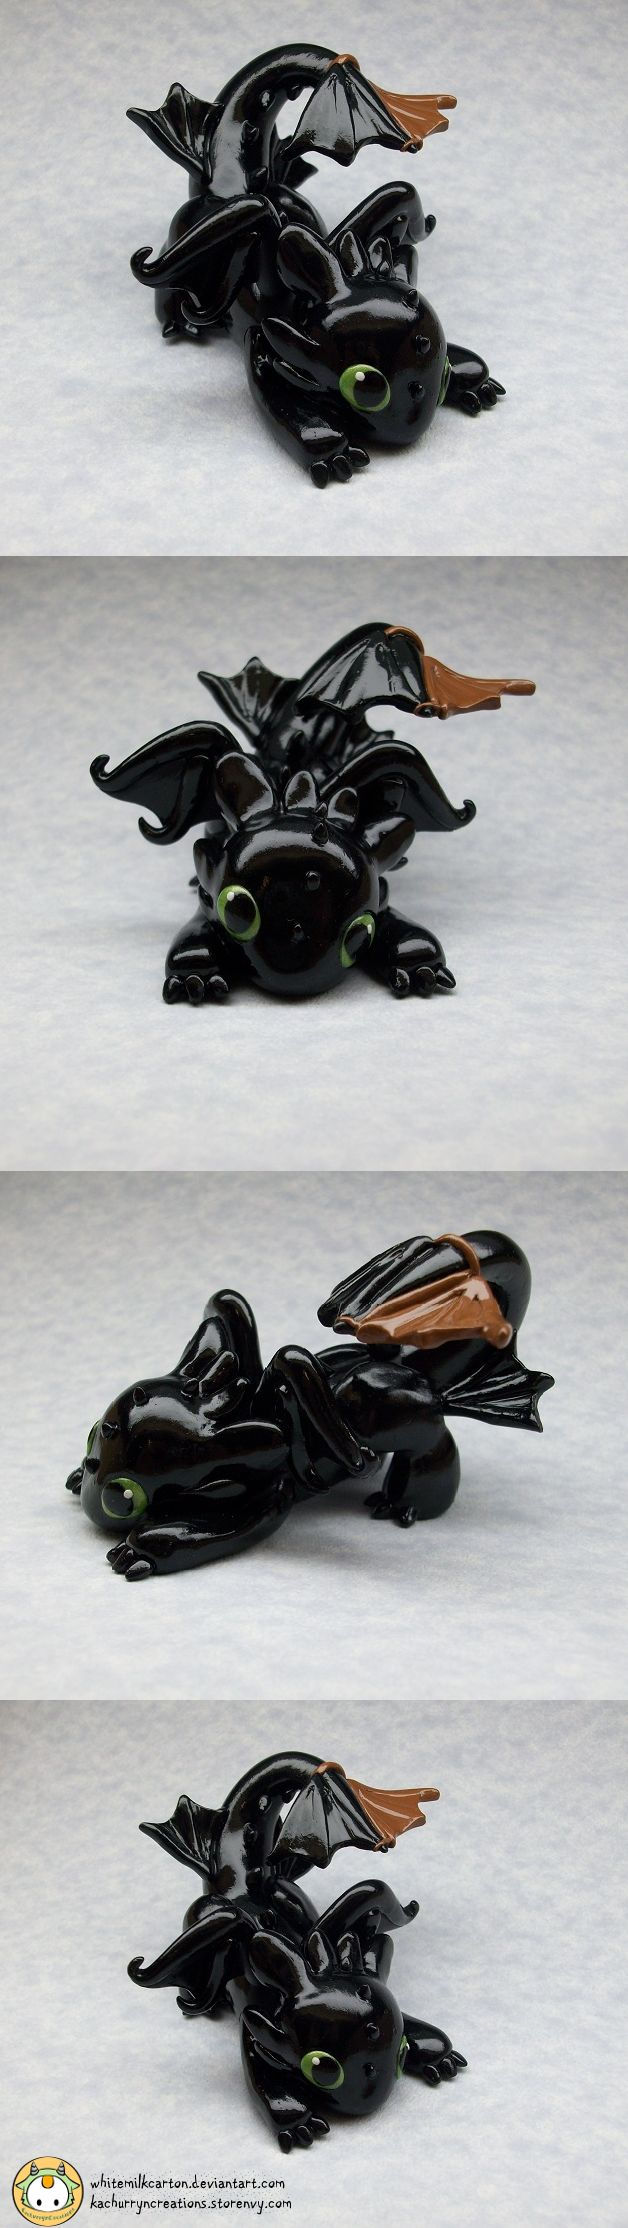 Toothless (Commission) by whitemilkcarton.deviantart.com on @deviantART